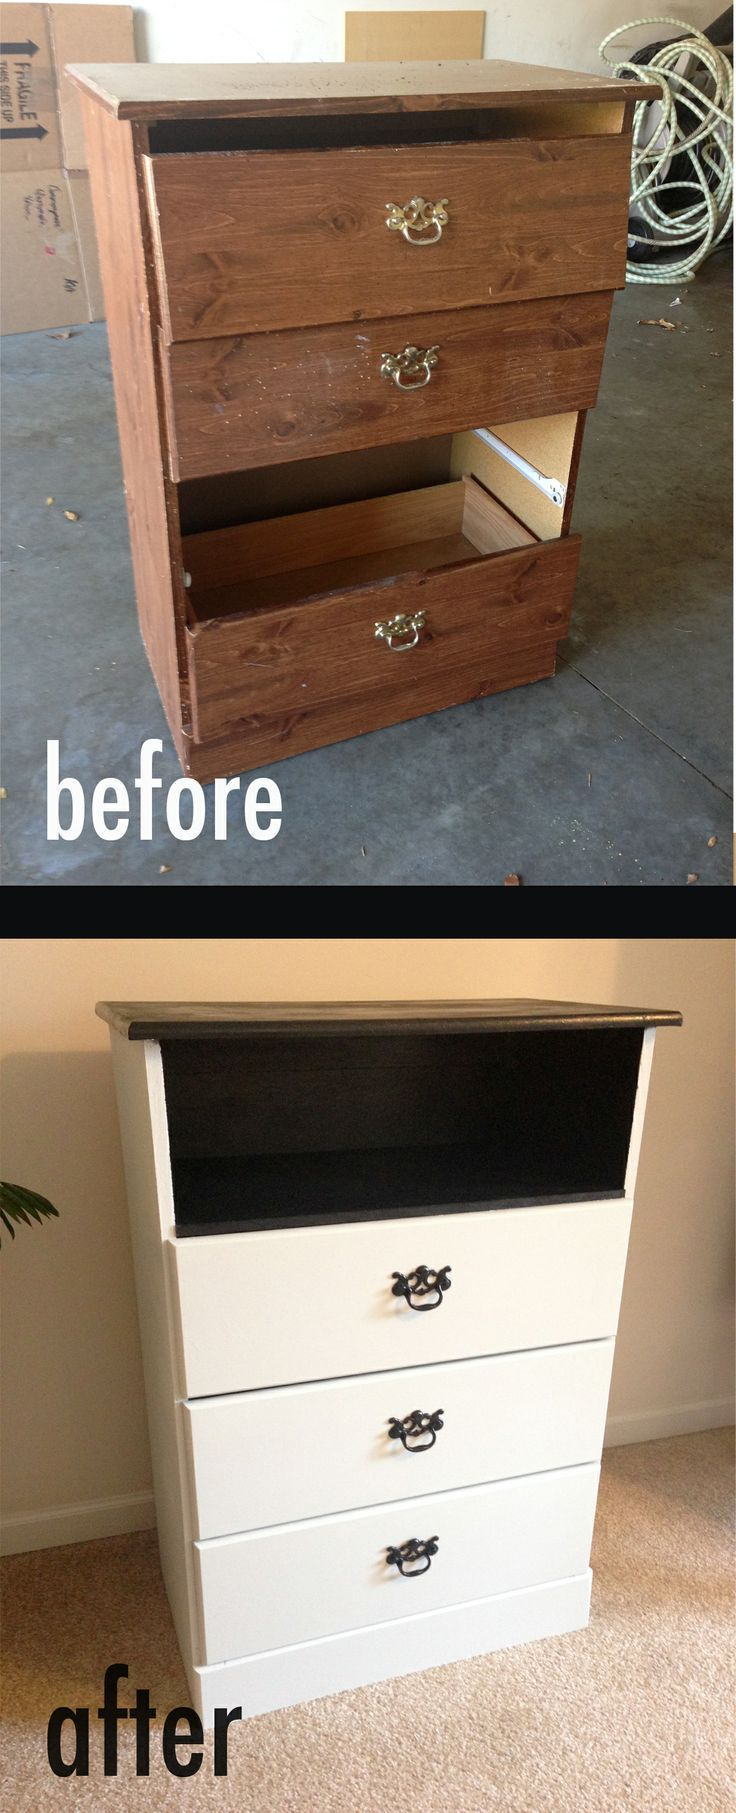 Broken dresser was missing a drawer. Replaced what should have been the drawer with a new shelf on top.